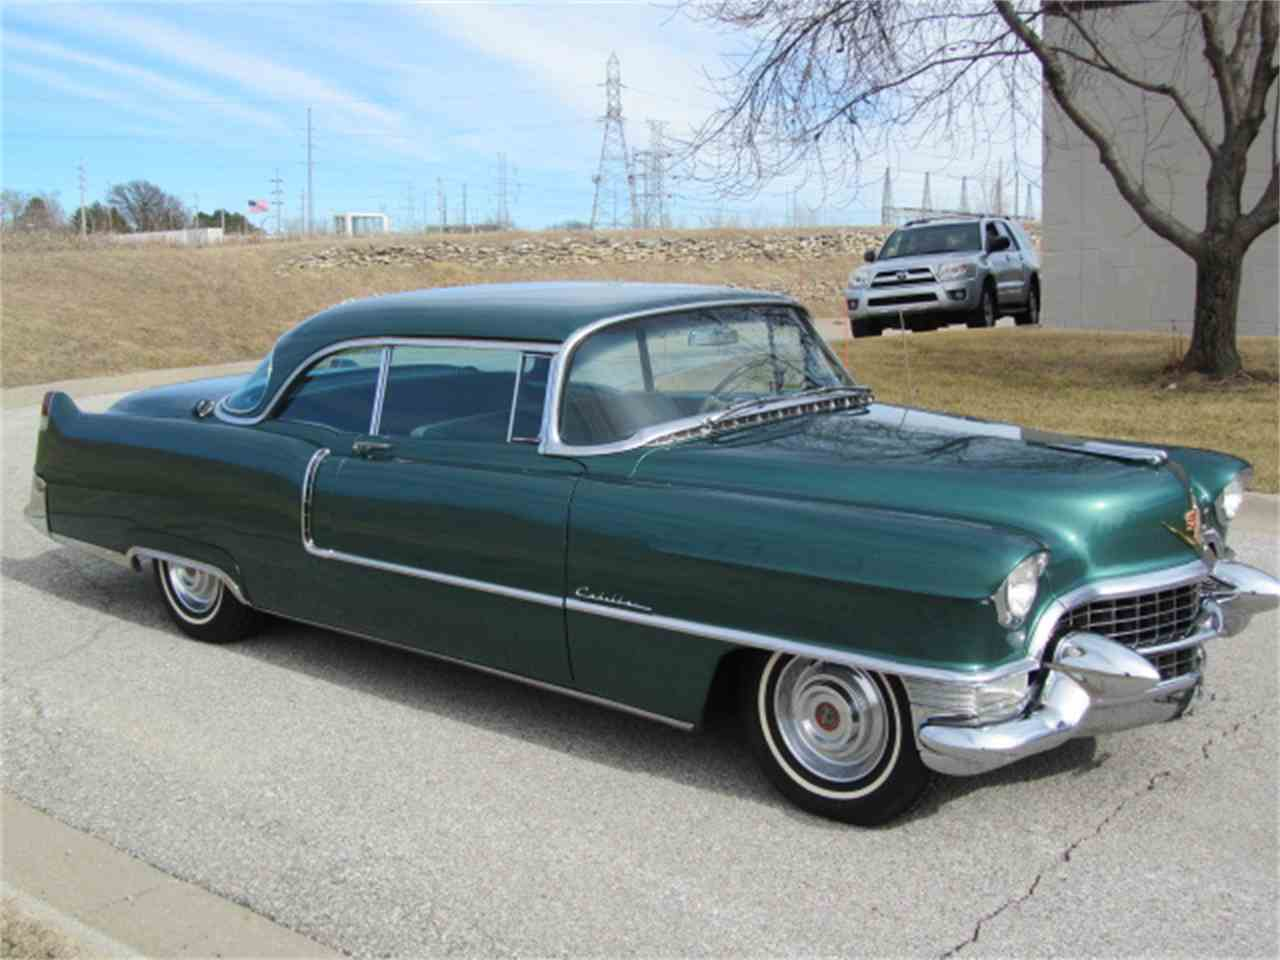 Large Picture of '55 Cadillac Series 62 Coupe DeVille located in Omaha Nebraska - $32,900.00 Offered by Classic Auto Sales - KNC6